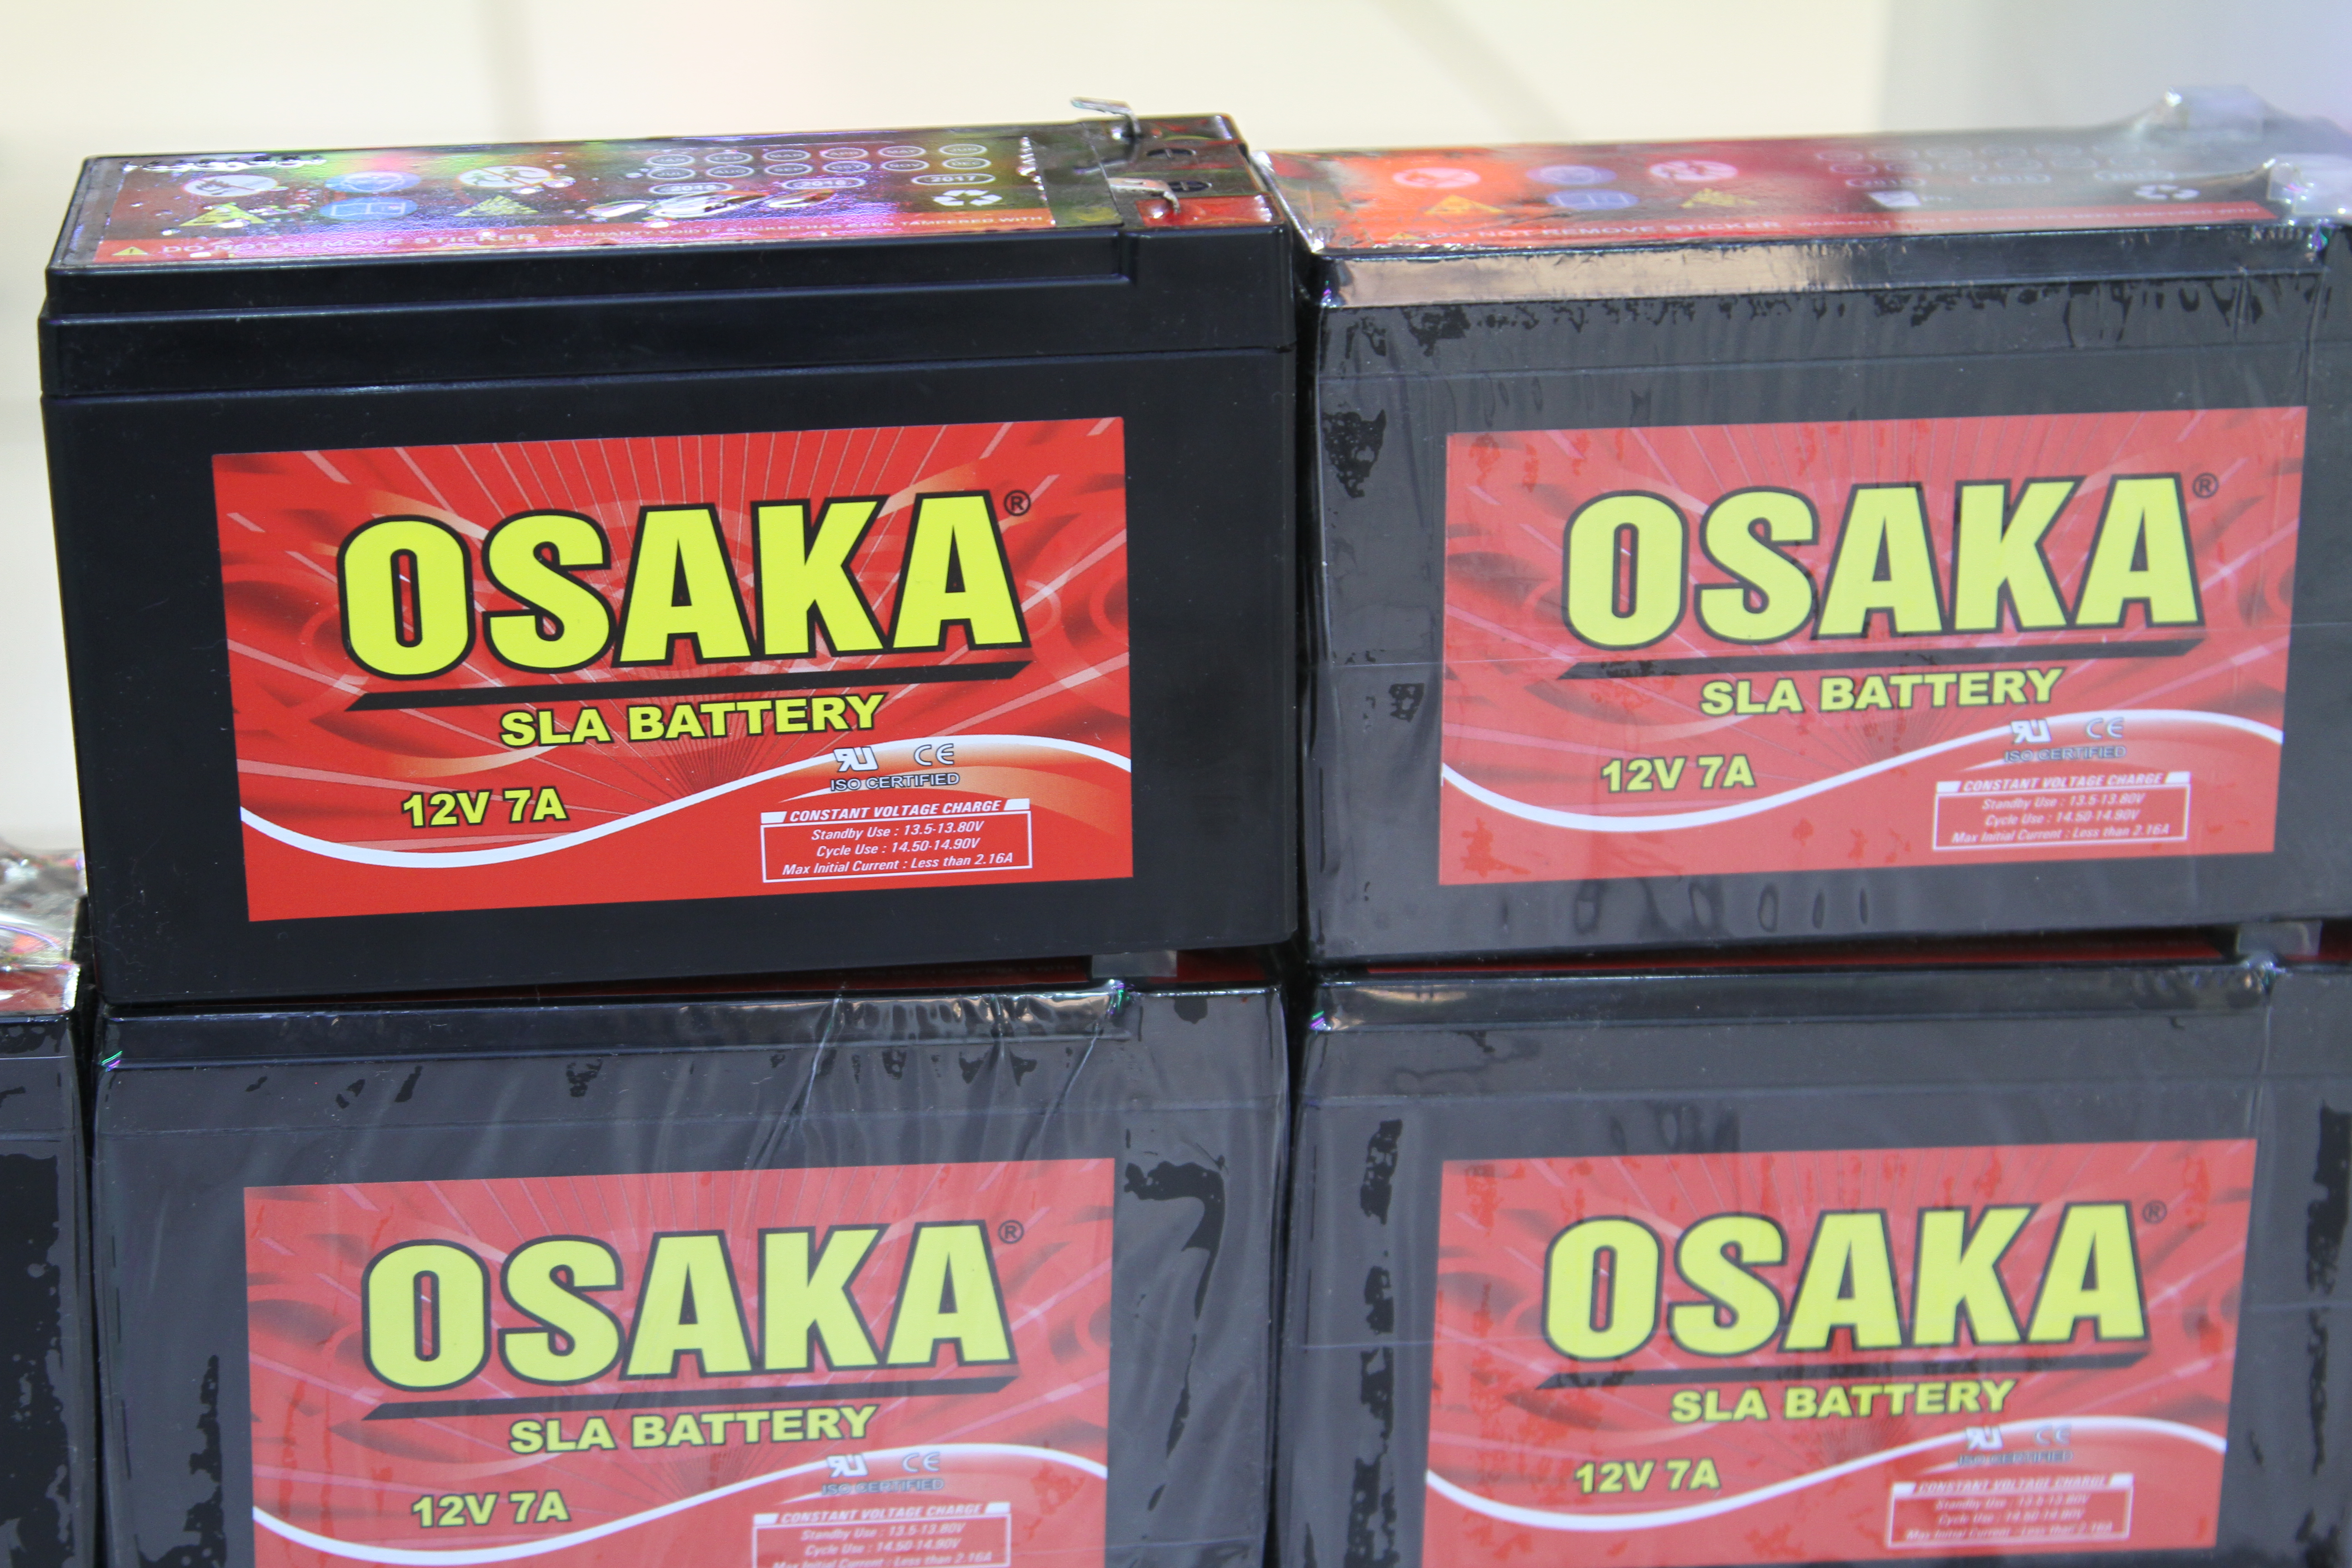 Montana Family Market_Ayan and Hanan Trader_12 volt rechargeable battery